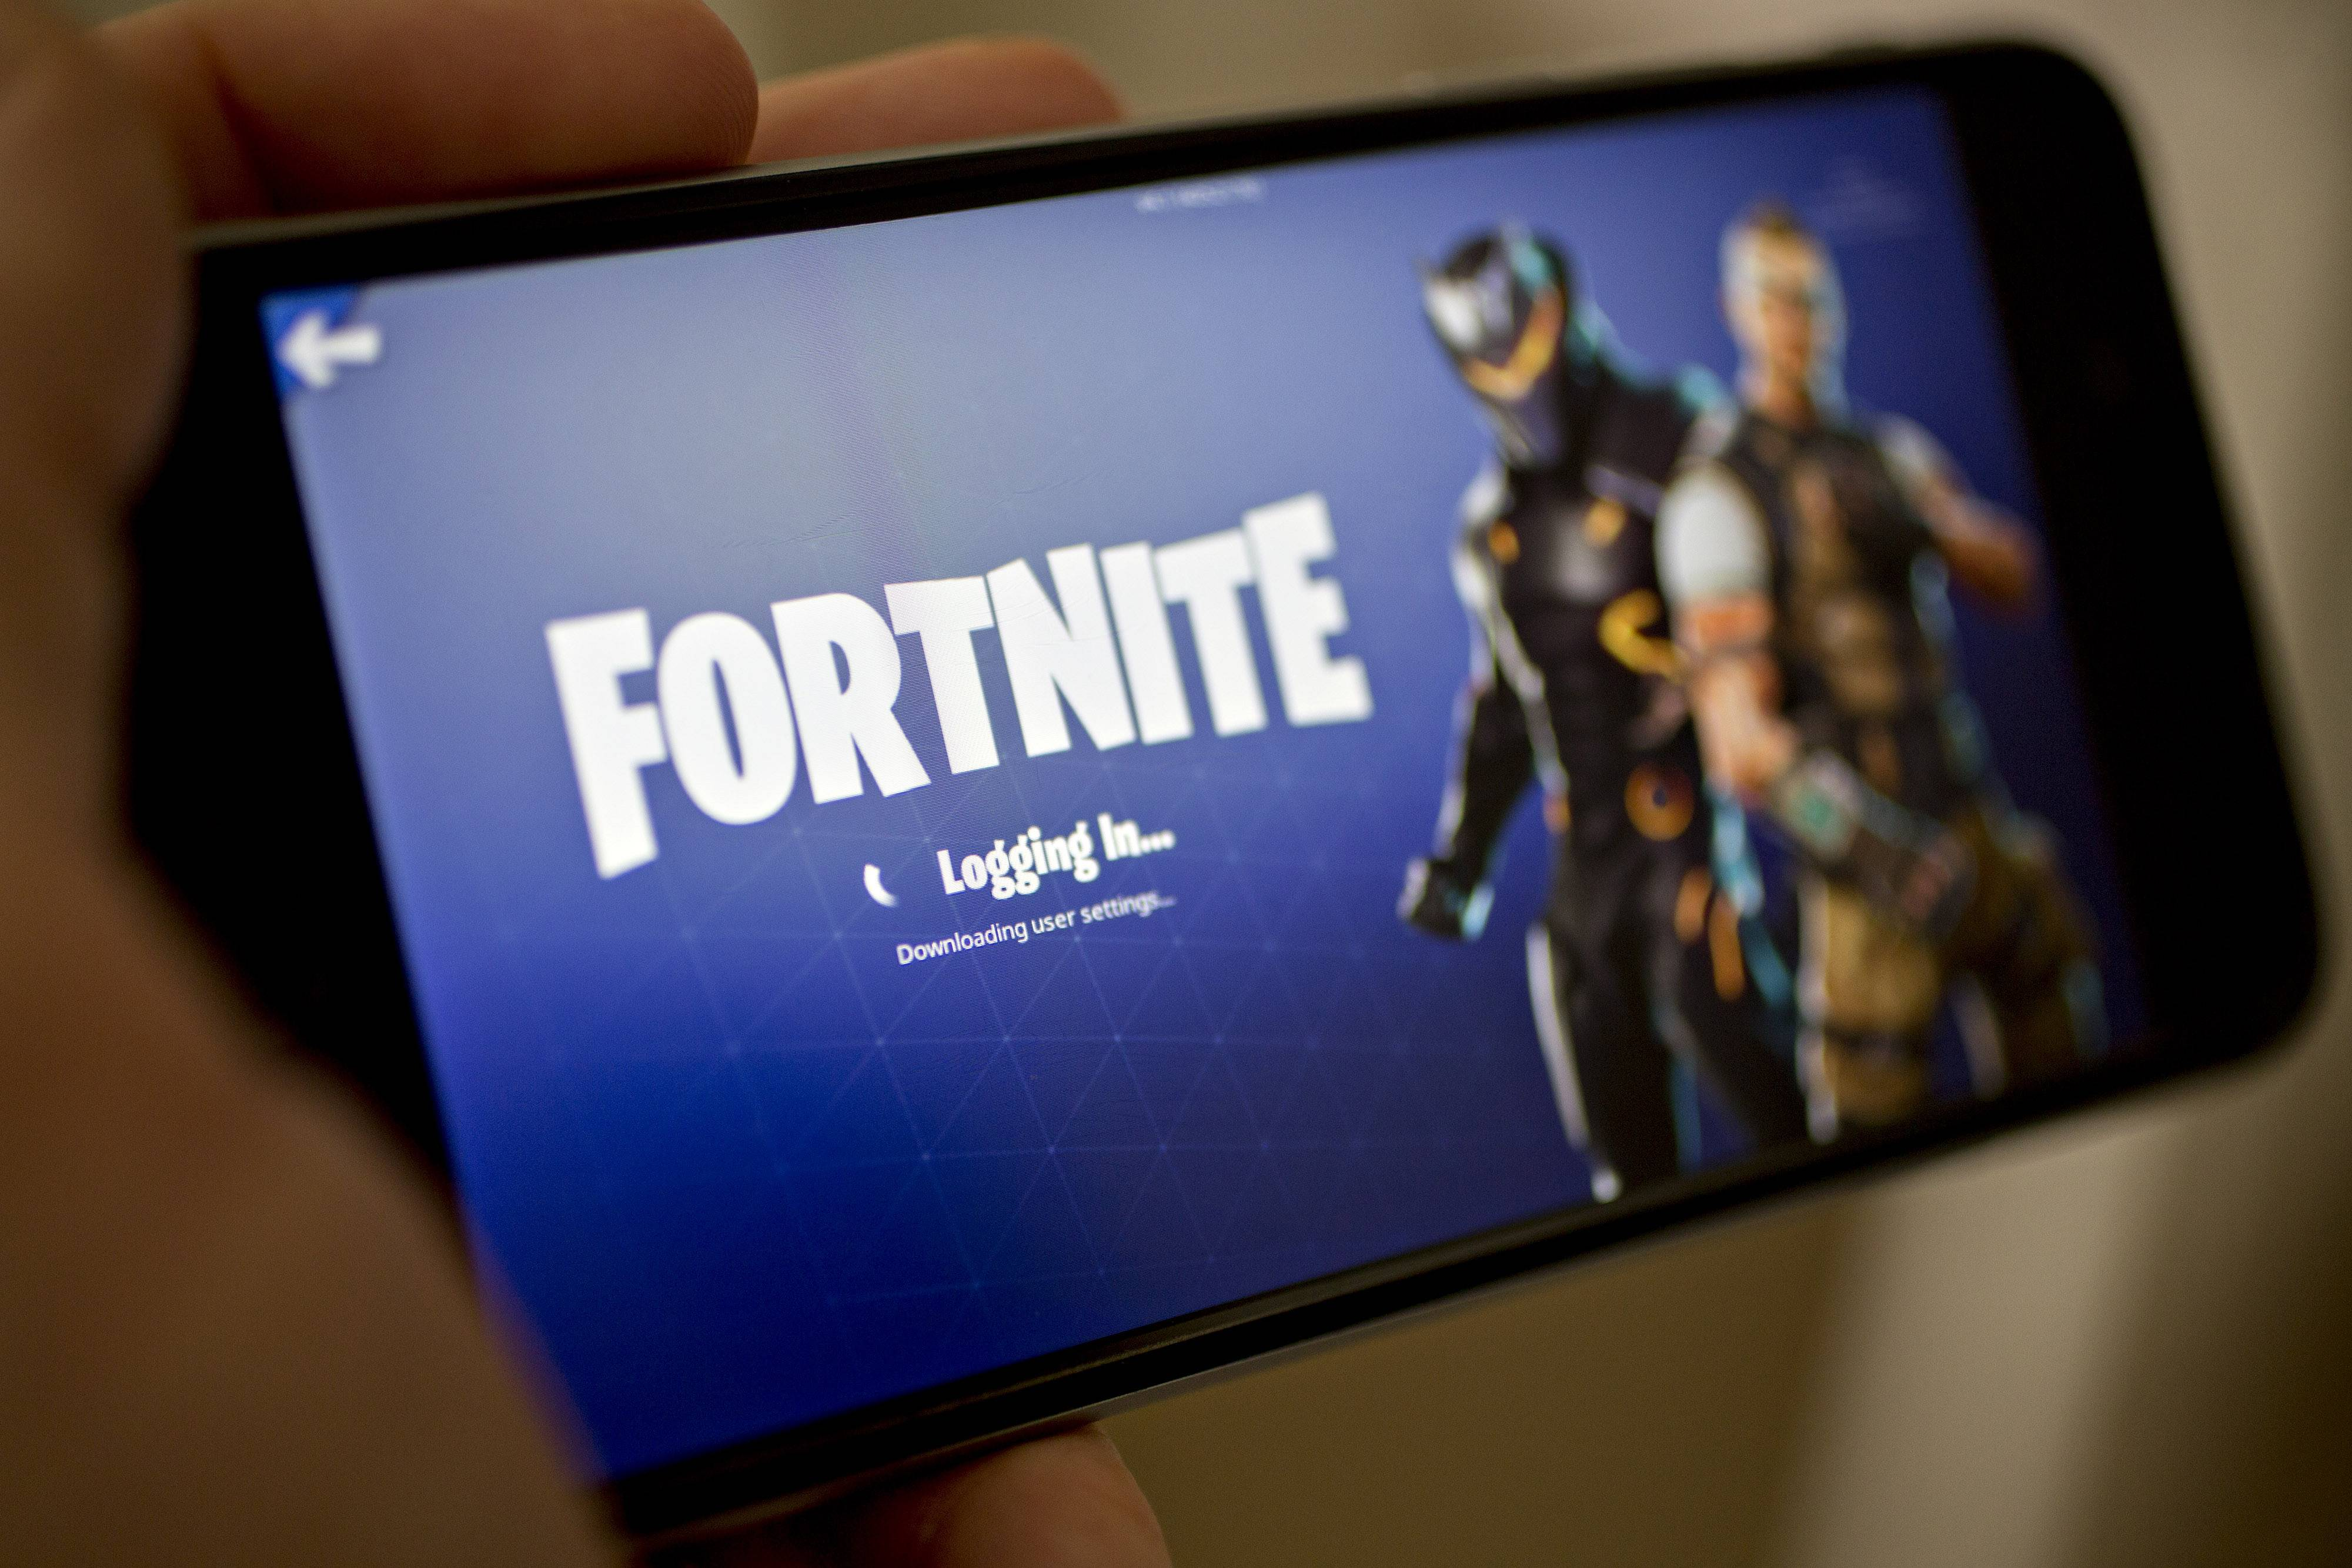 Fortnite's Battle Royale video game.